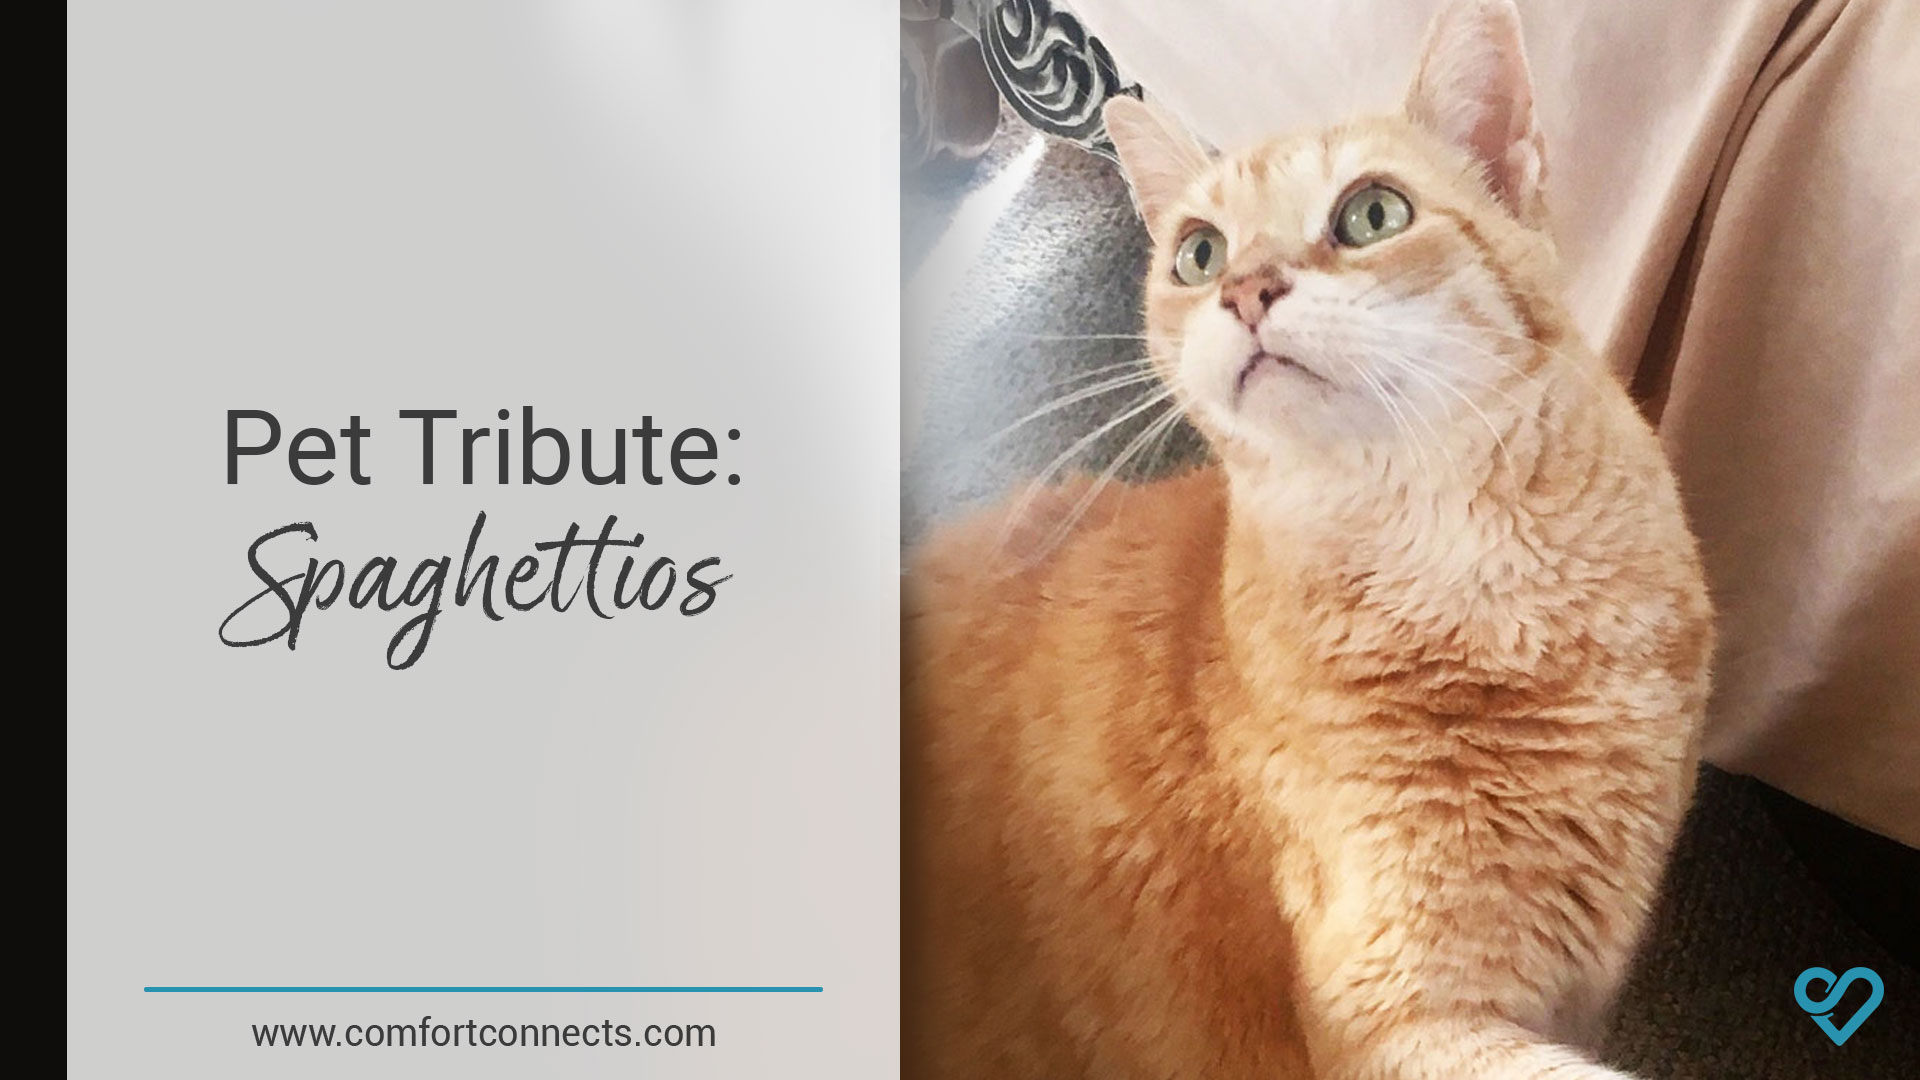 Pet Tribute: Spaghettios